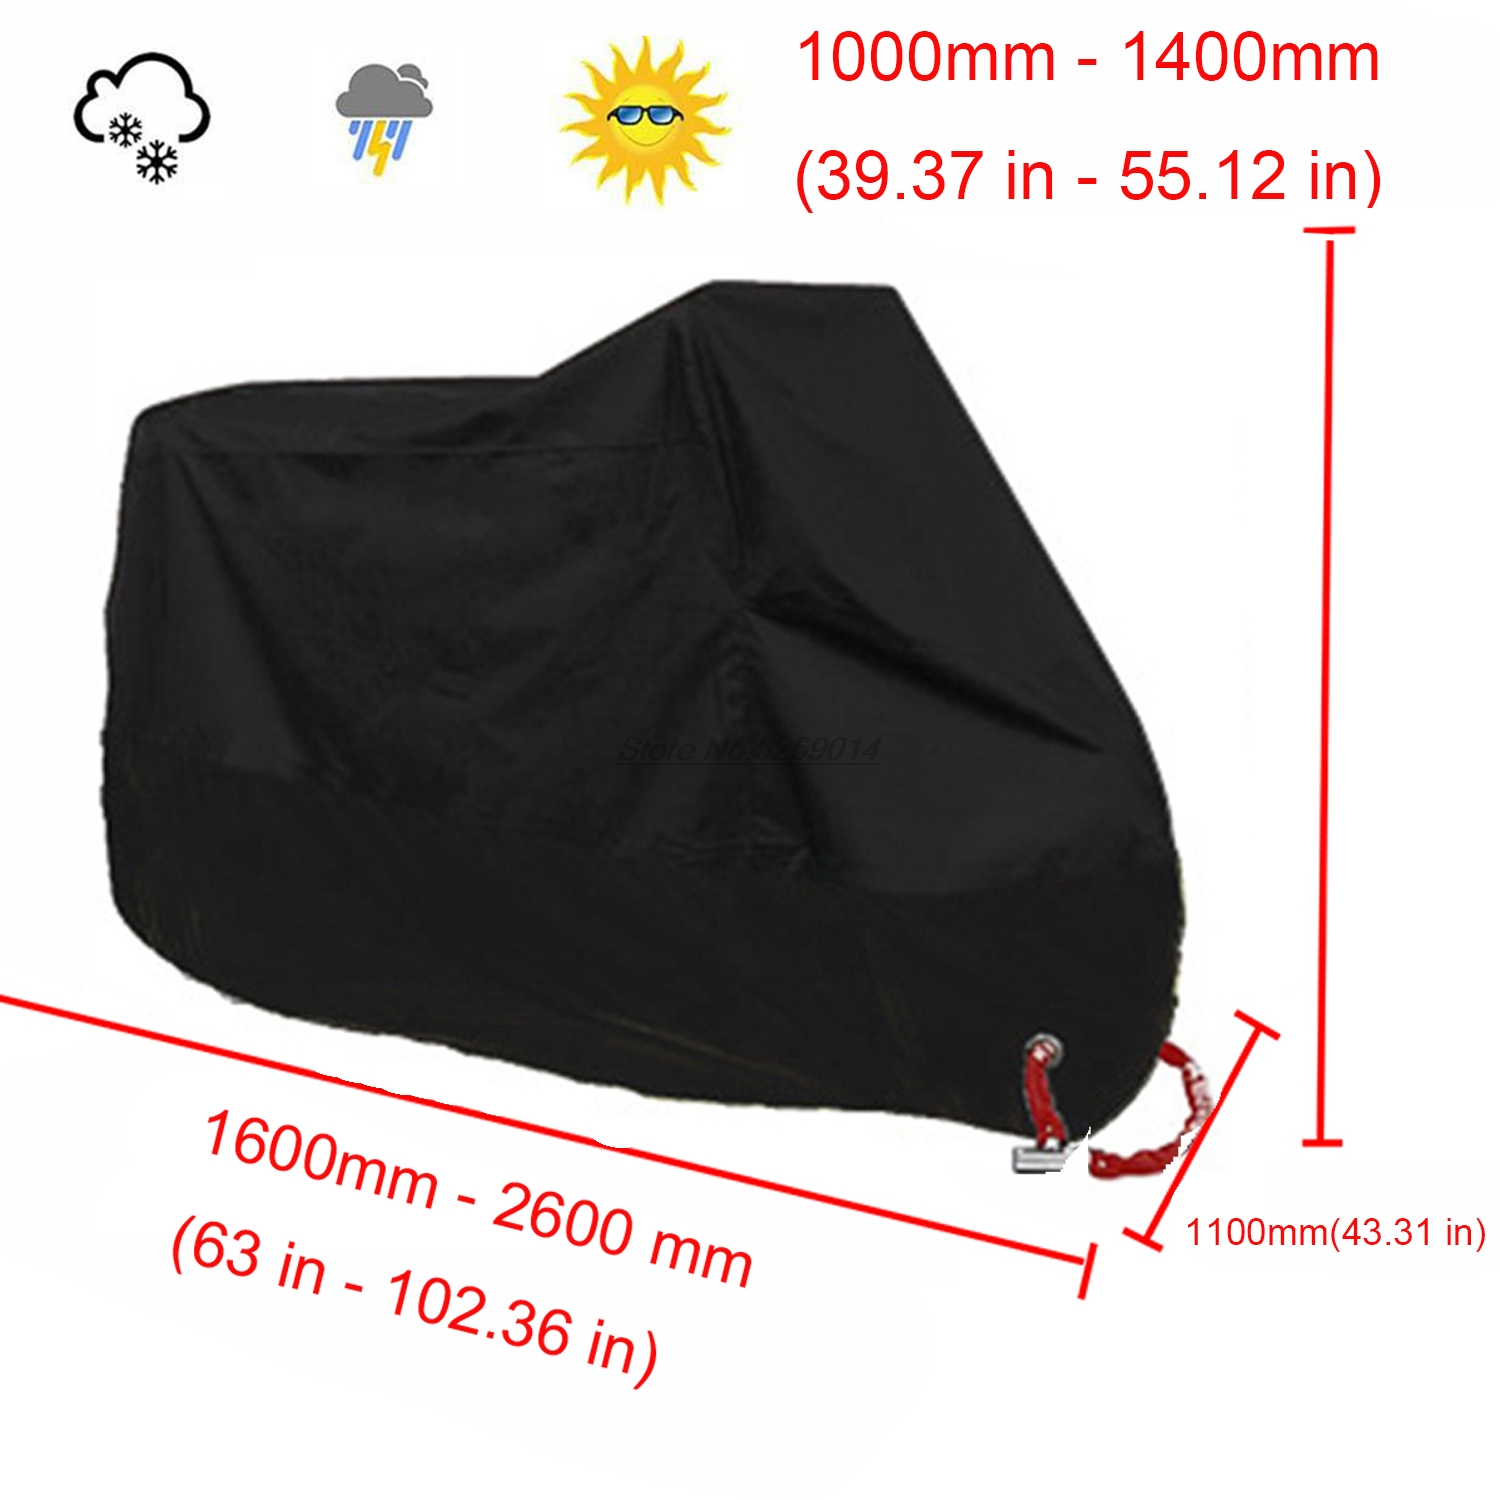 Motorcycle covers UV anti for 1190 honda cb600f hornet <font><b>accessories</b></font> honda shadow parts <font><b>k1200lt</b></font> kymco downtown 350i monster KTM image